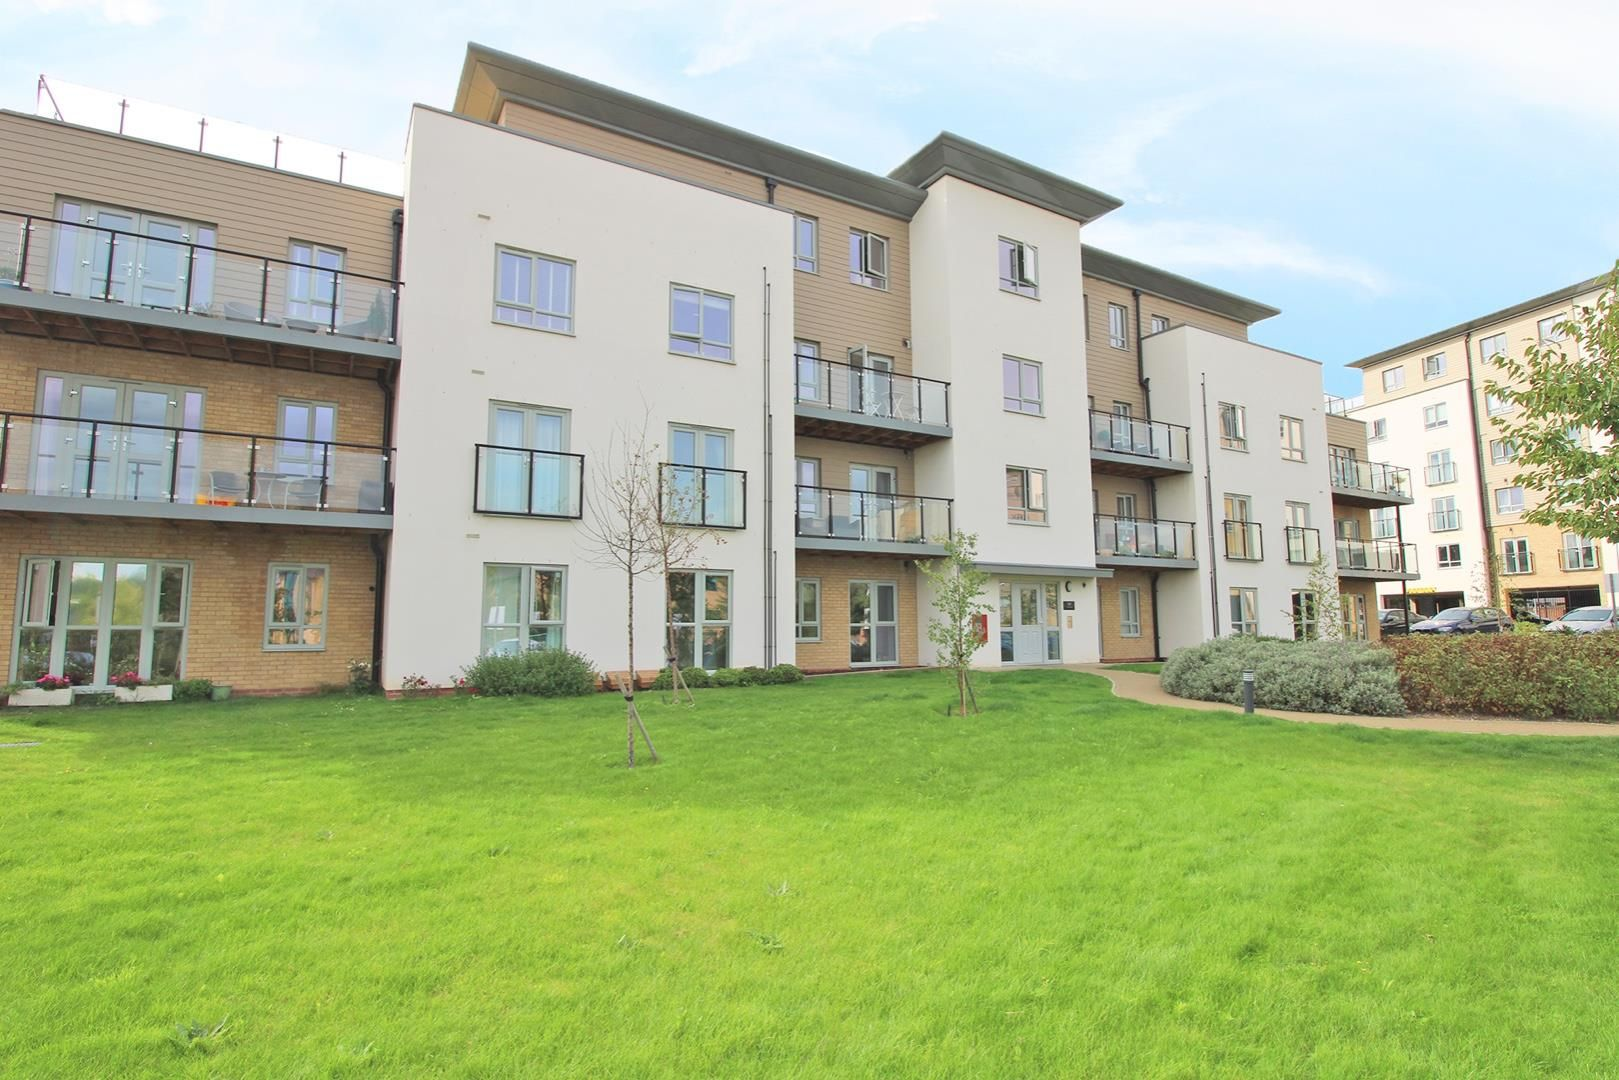 2 bed apartment to rent, RG12